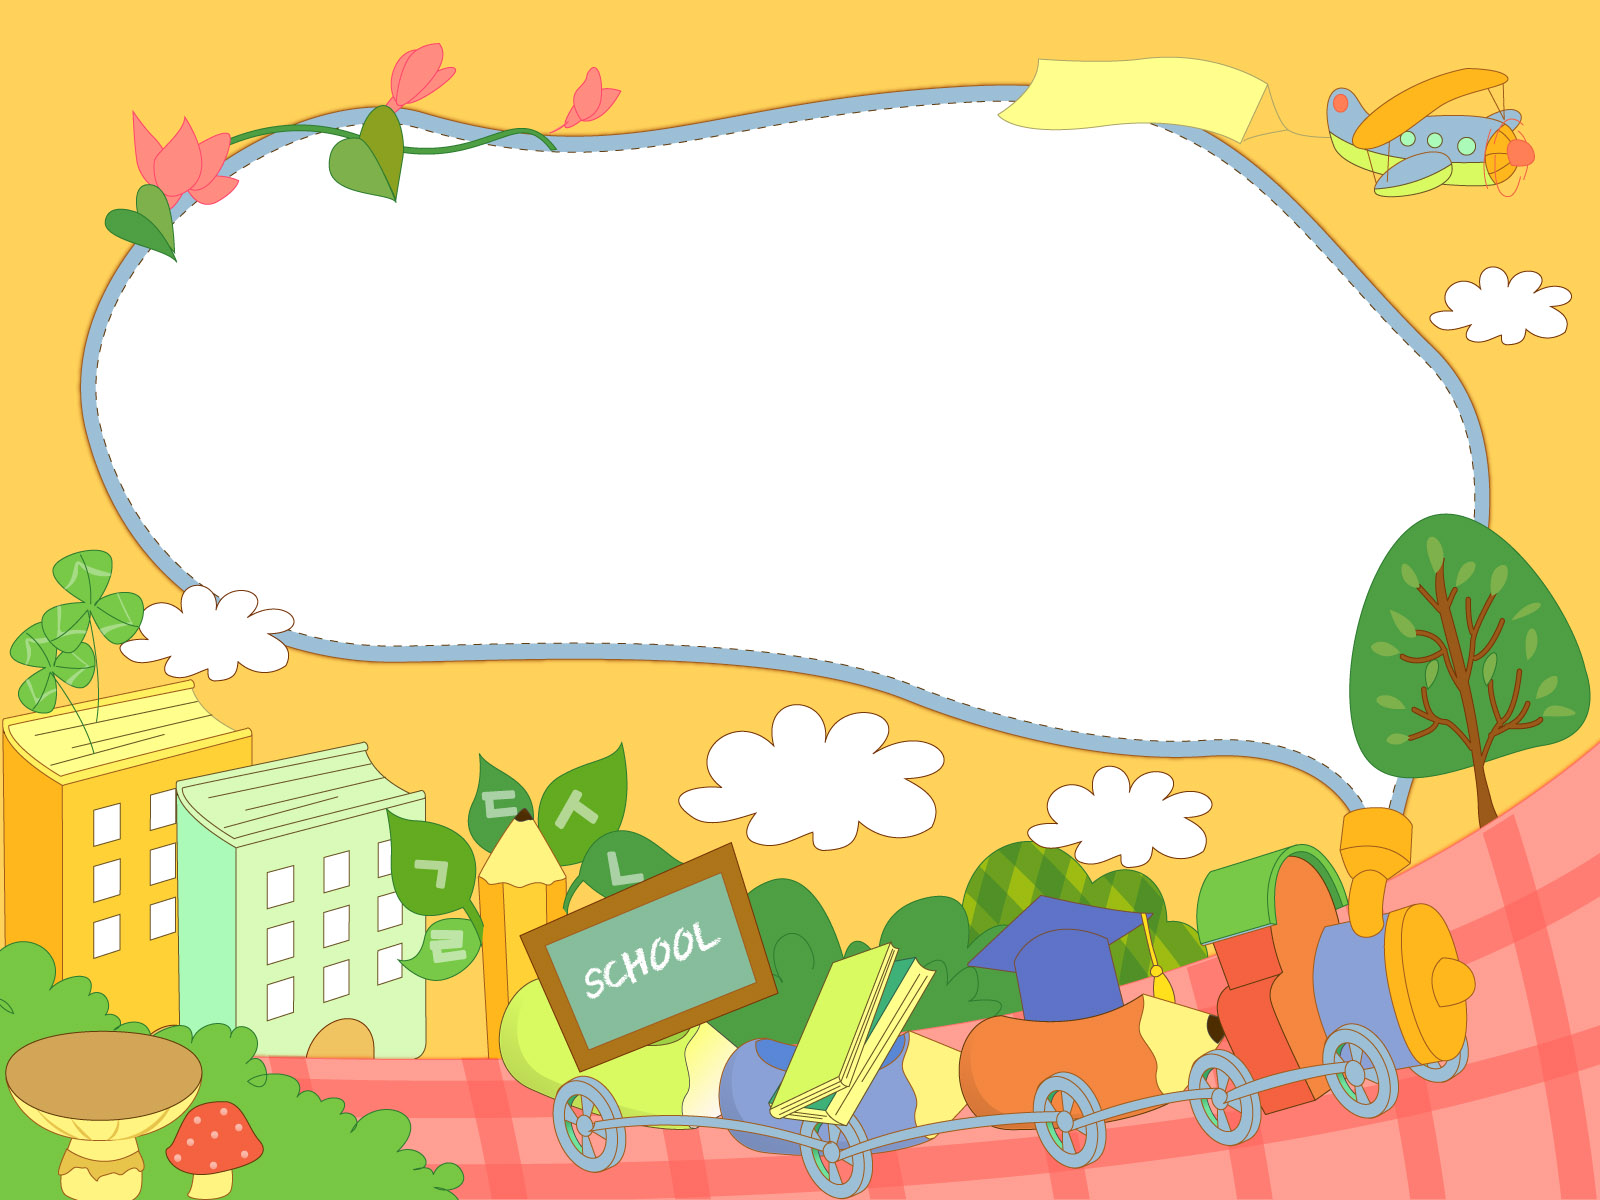 Free Cartoon Classroom Images, Download Free Clip Art, Free.